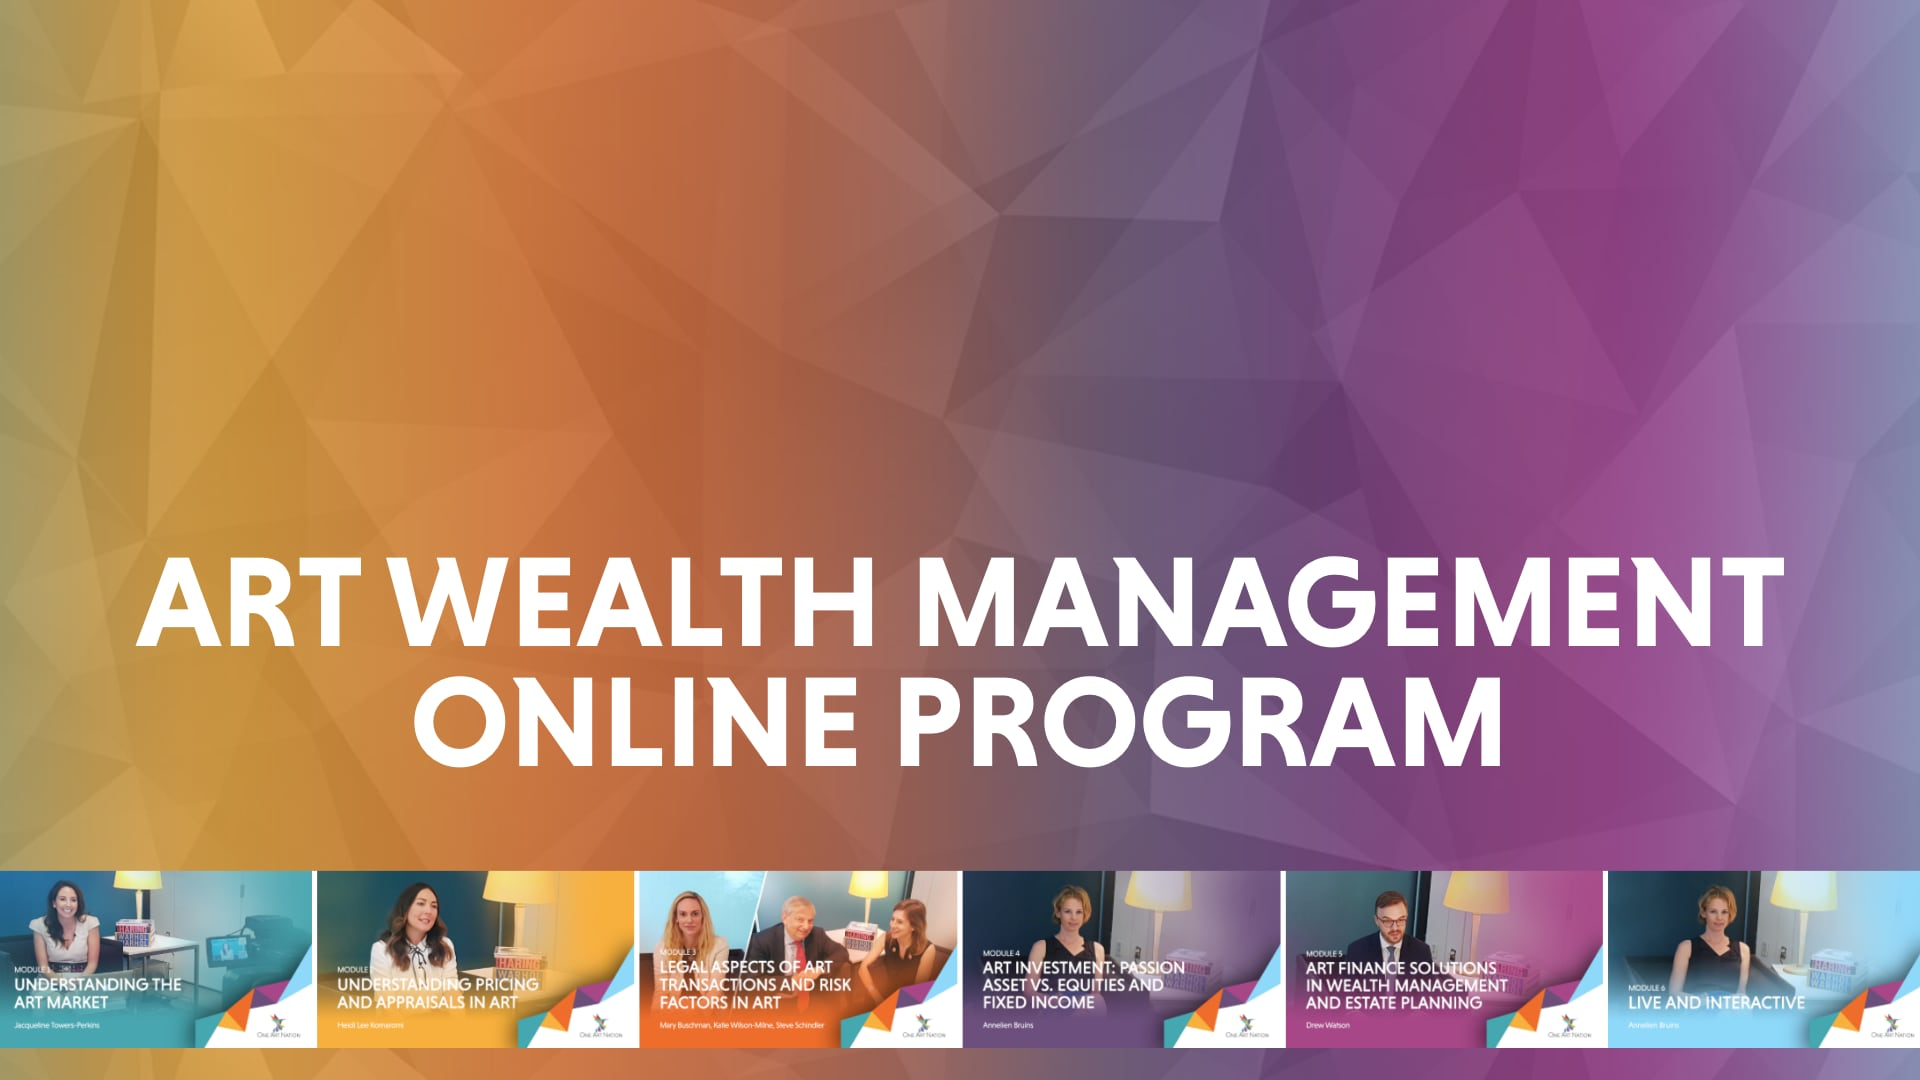 Art Wealth Management Online Program - One Art Nation: Online Art